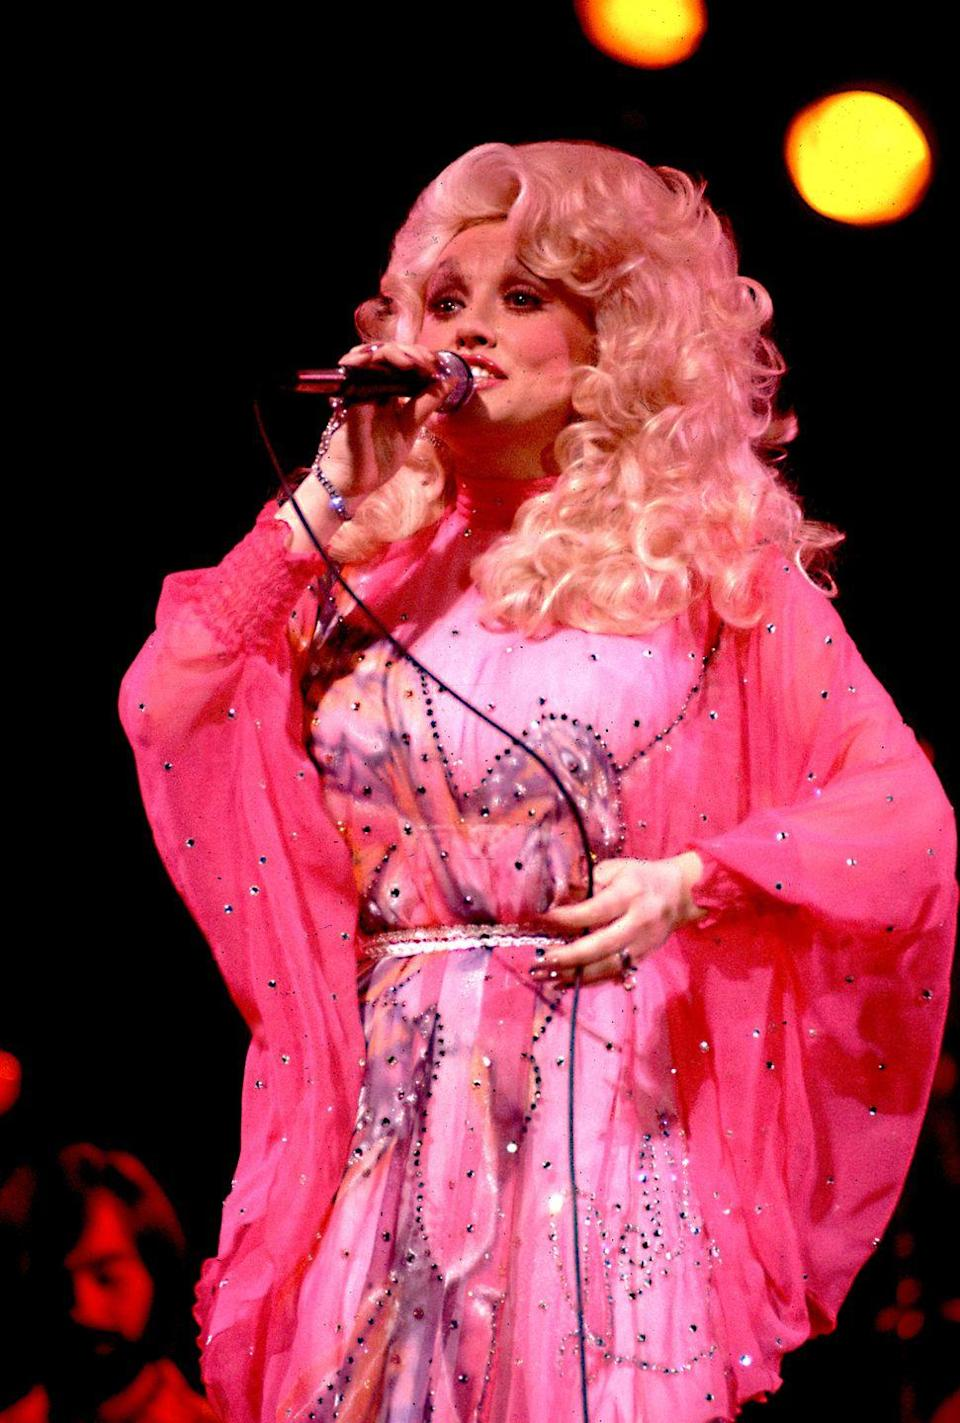 <p>Here, Parton is dressed up like the fourth fairy godmother in <em>Sleeping Beauty</em>. </p>